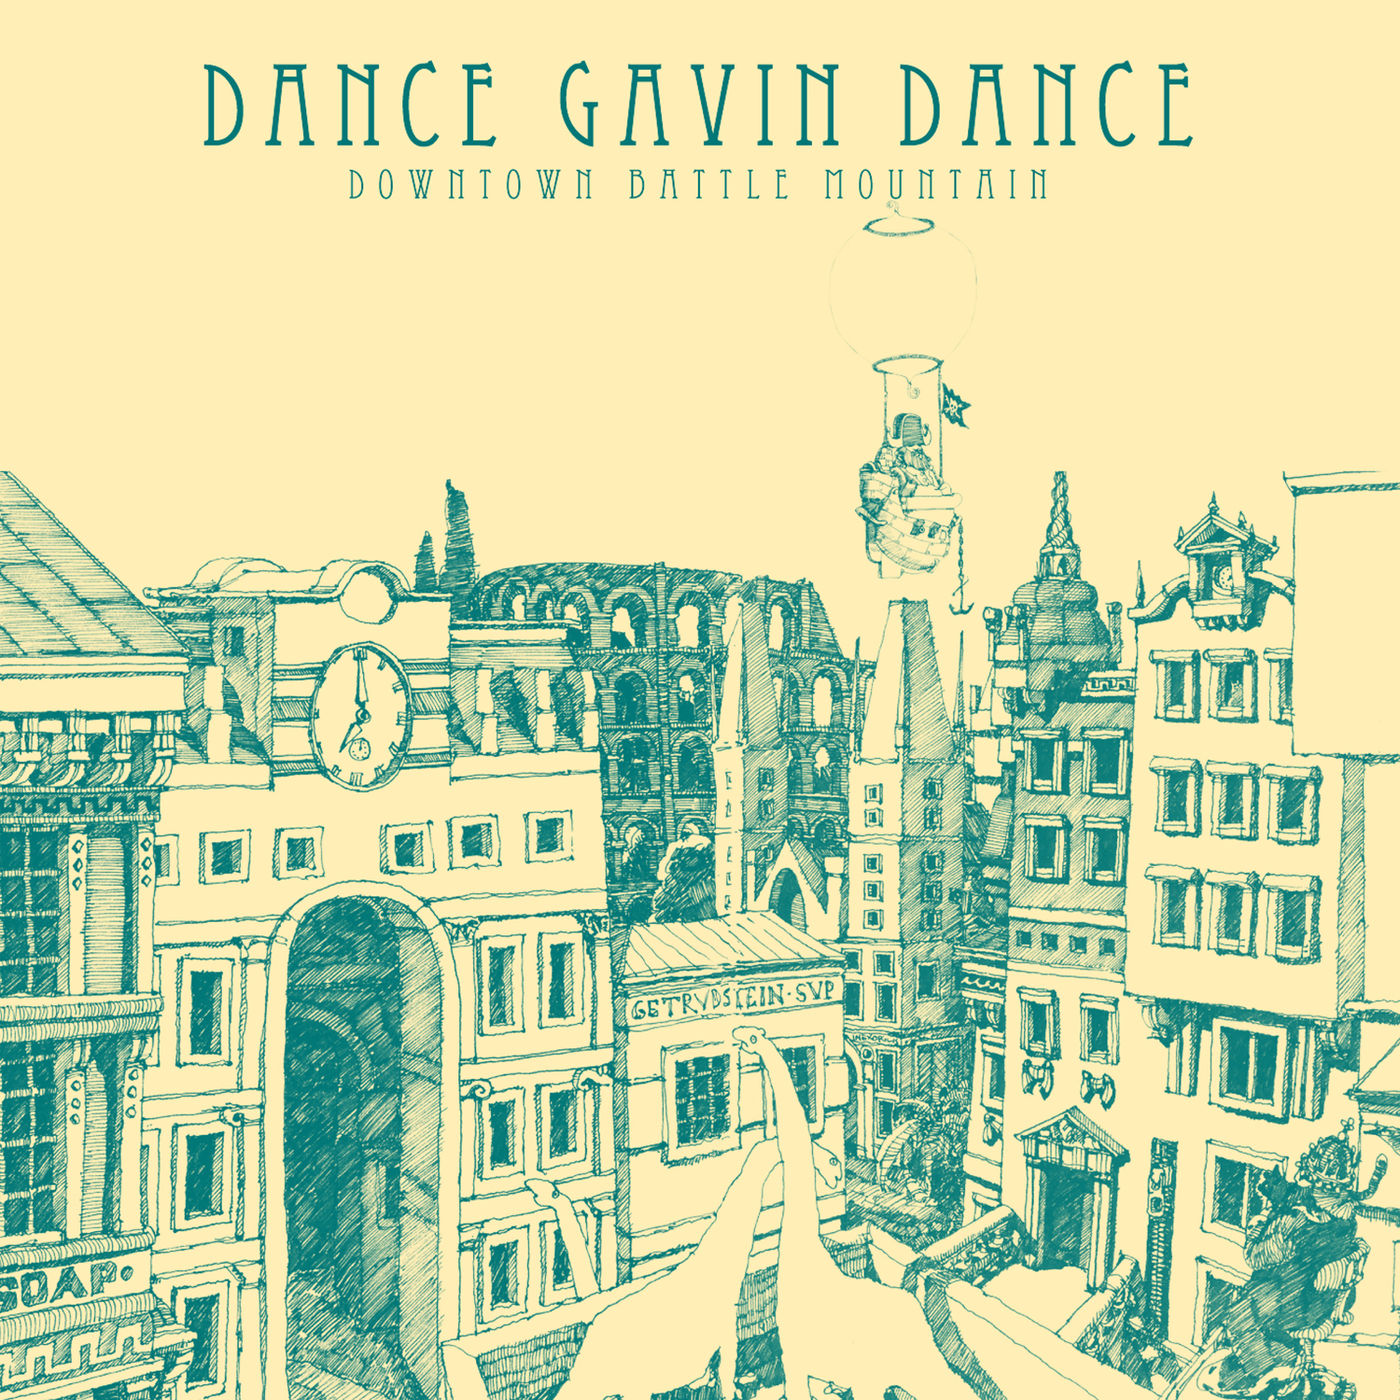 Dance Gavin Dance - Downtown Battle Mountain (Instrumental) (2019)